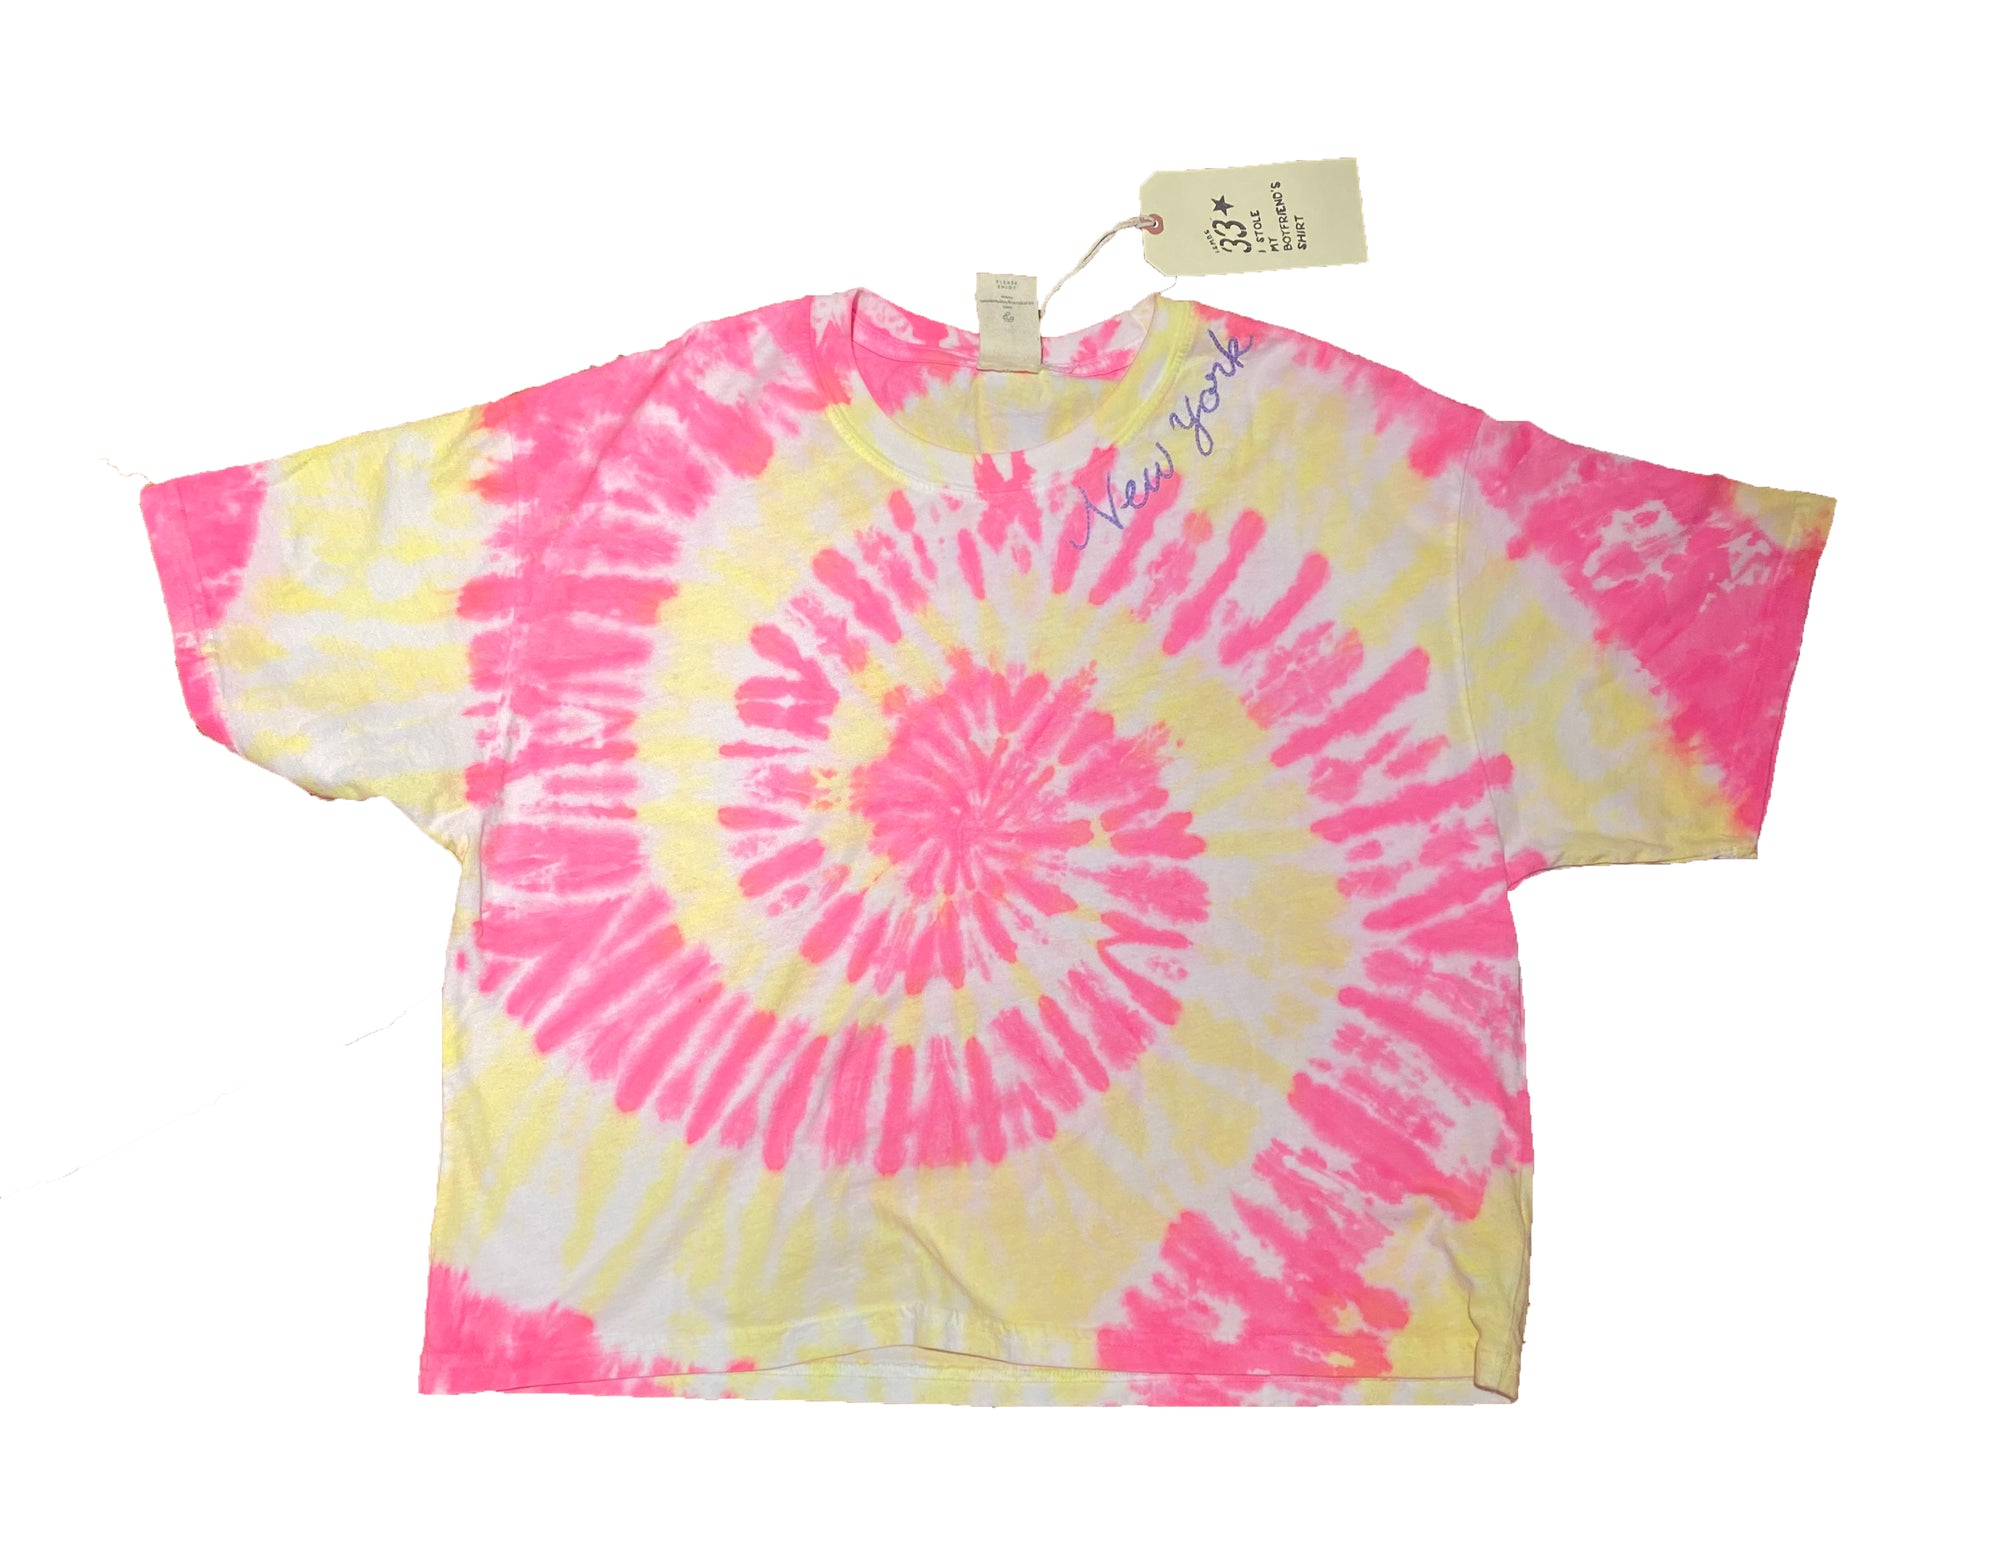 New York Pink Tie Dye T-Shirt